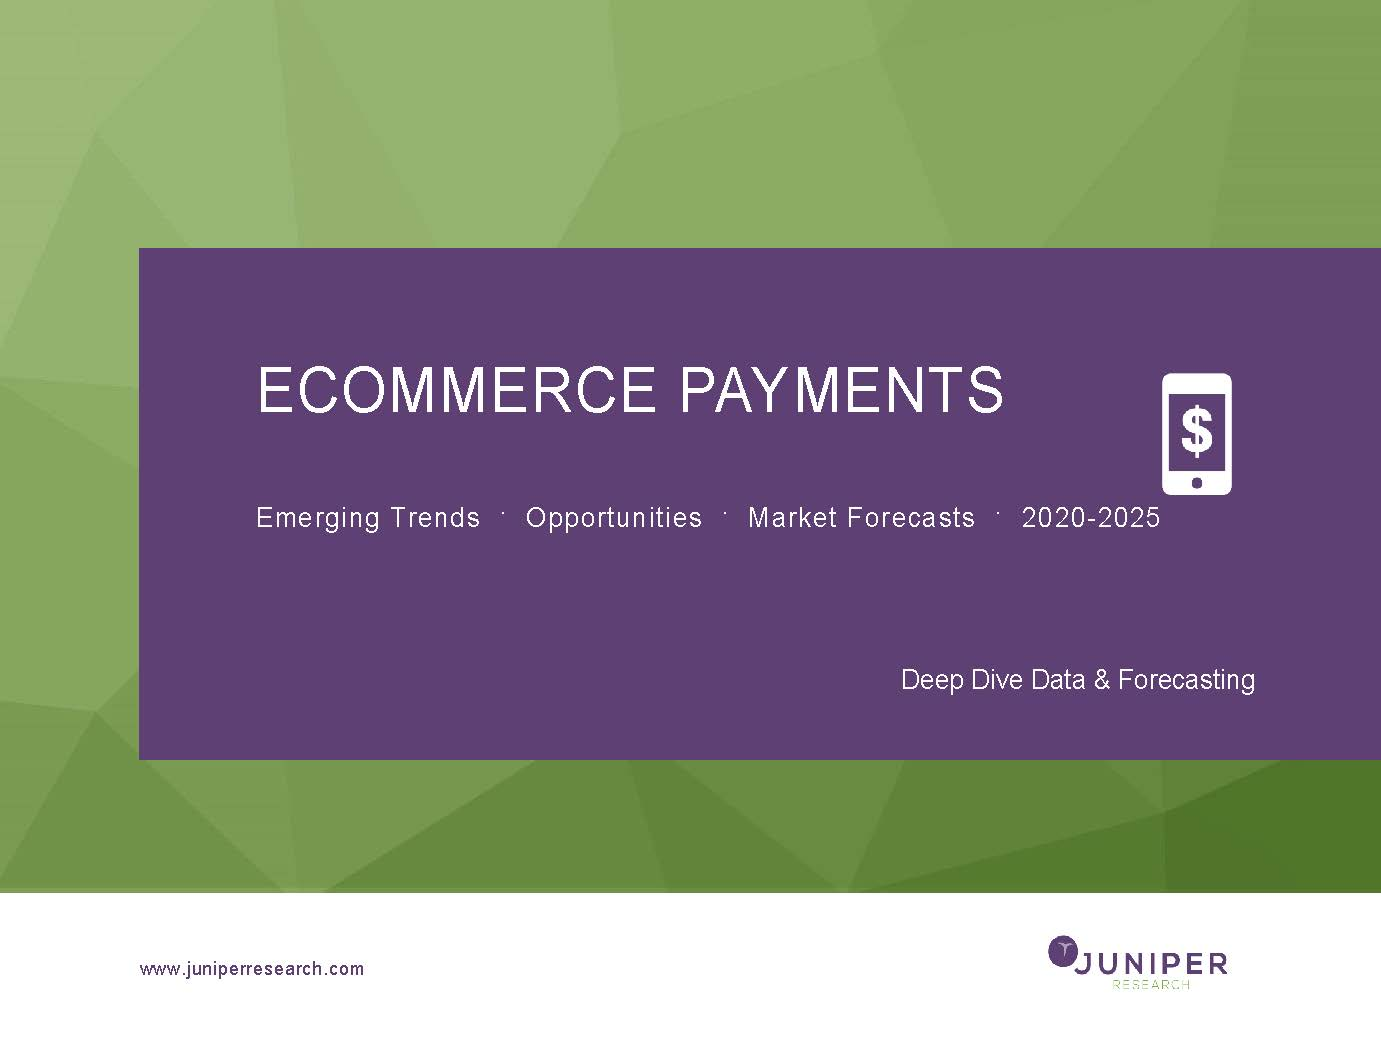 eCommerce Payments: Deep Dive Data & Forecasting 2020-2025